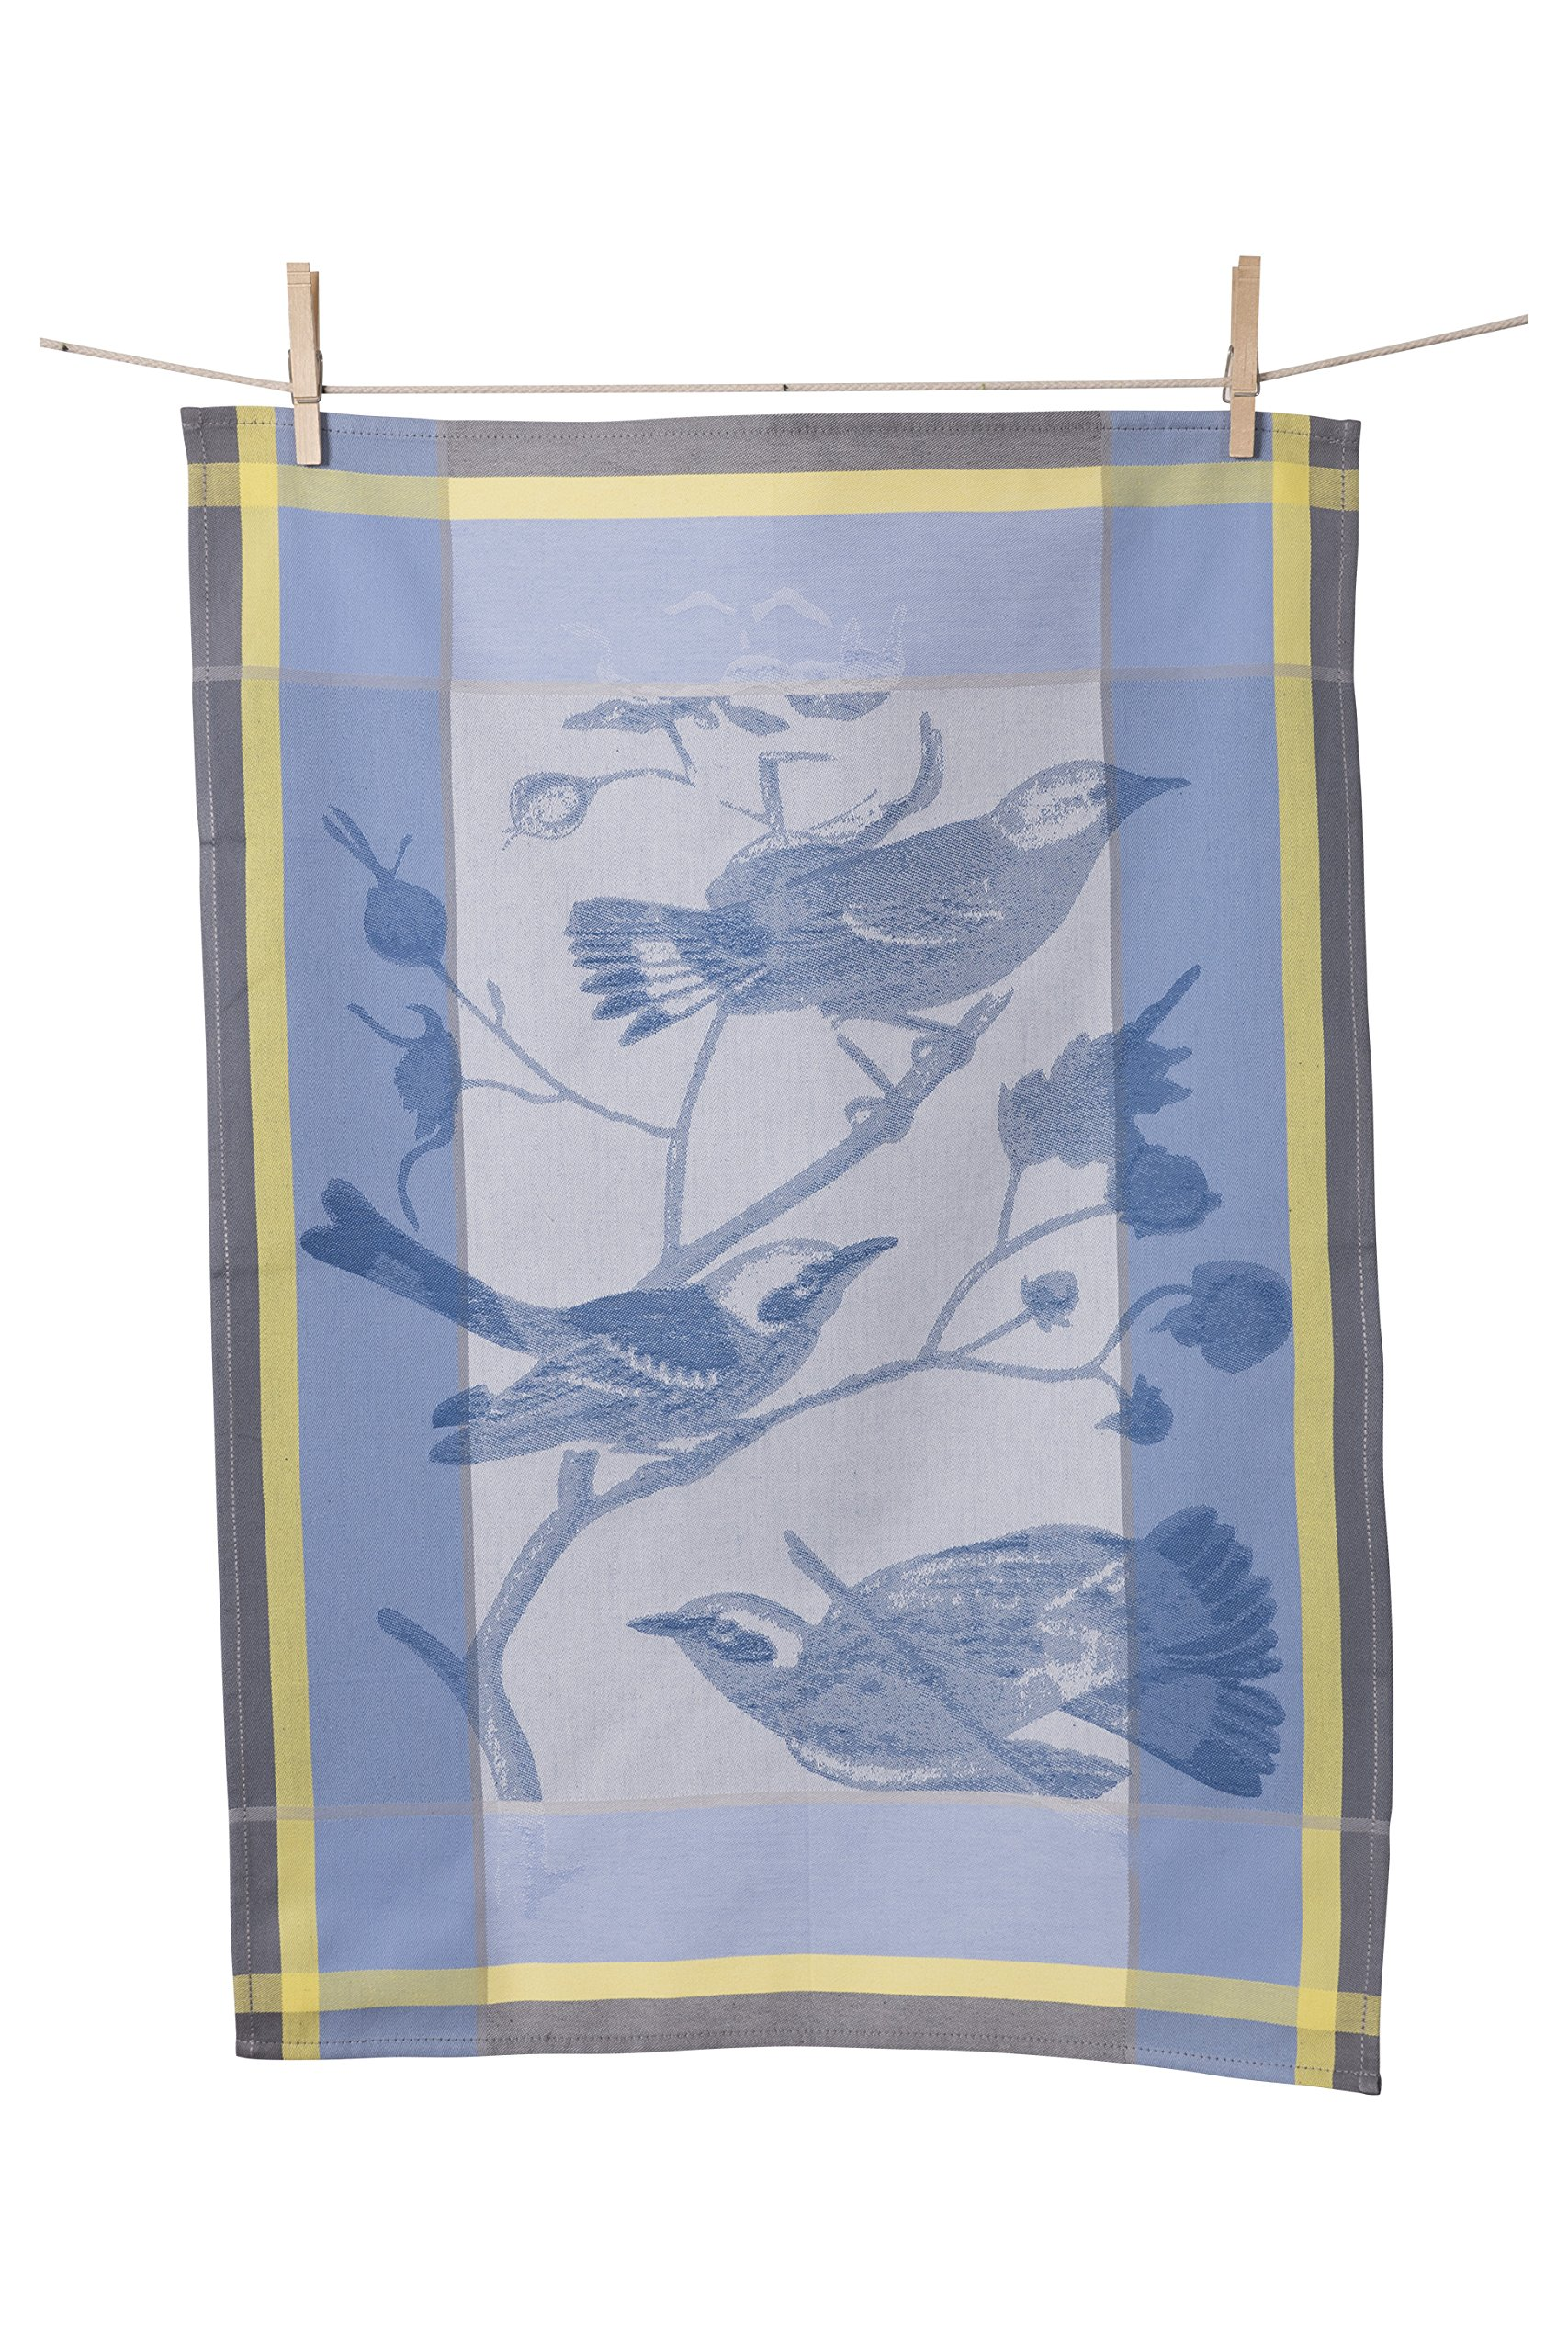 KAF Home Porto Jacquard Kitchen Towel, 100% Cotton, Absorbent, Oversized at 19.5'' x 30'', Made in Portugal, Birds